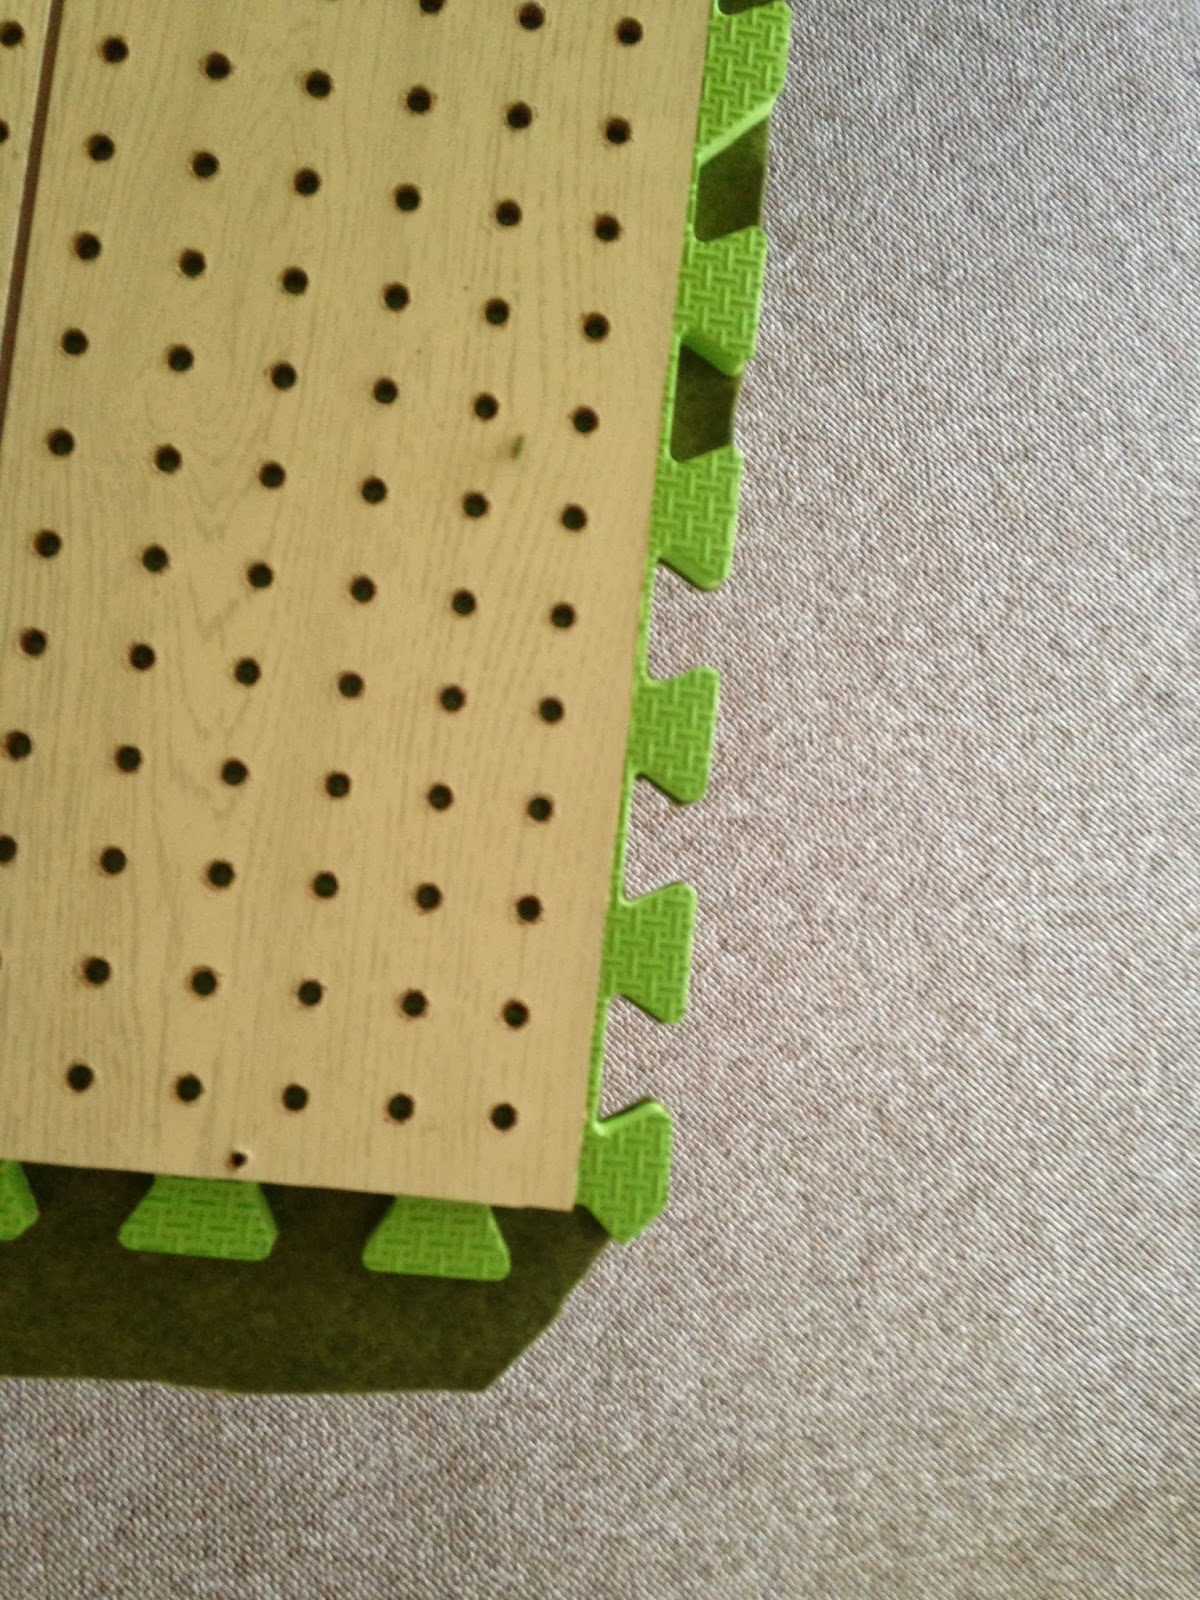 How to wipe stitches on tiles: practical tips